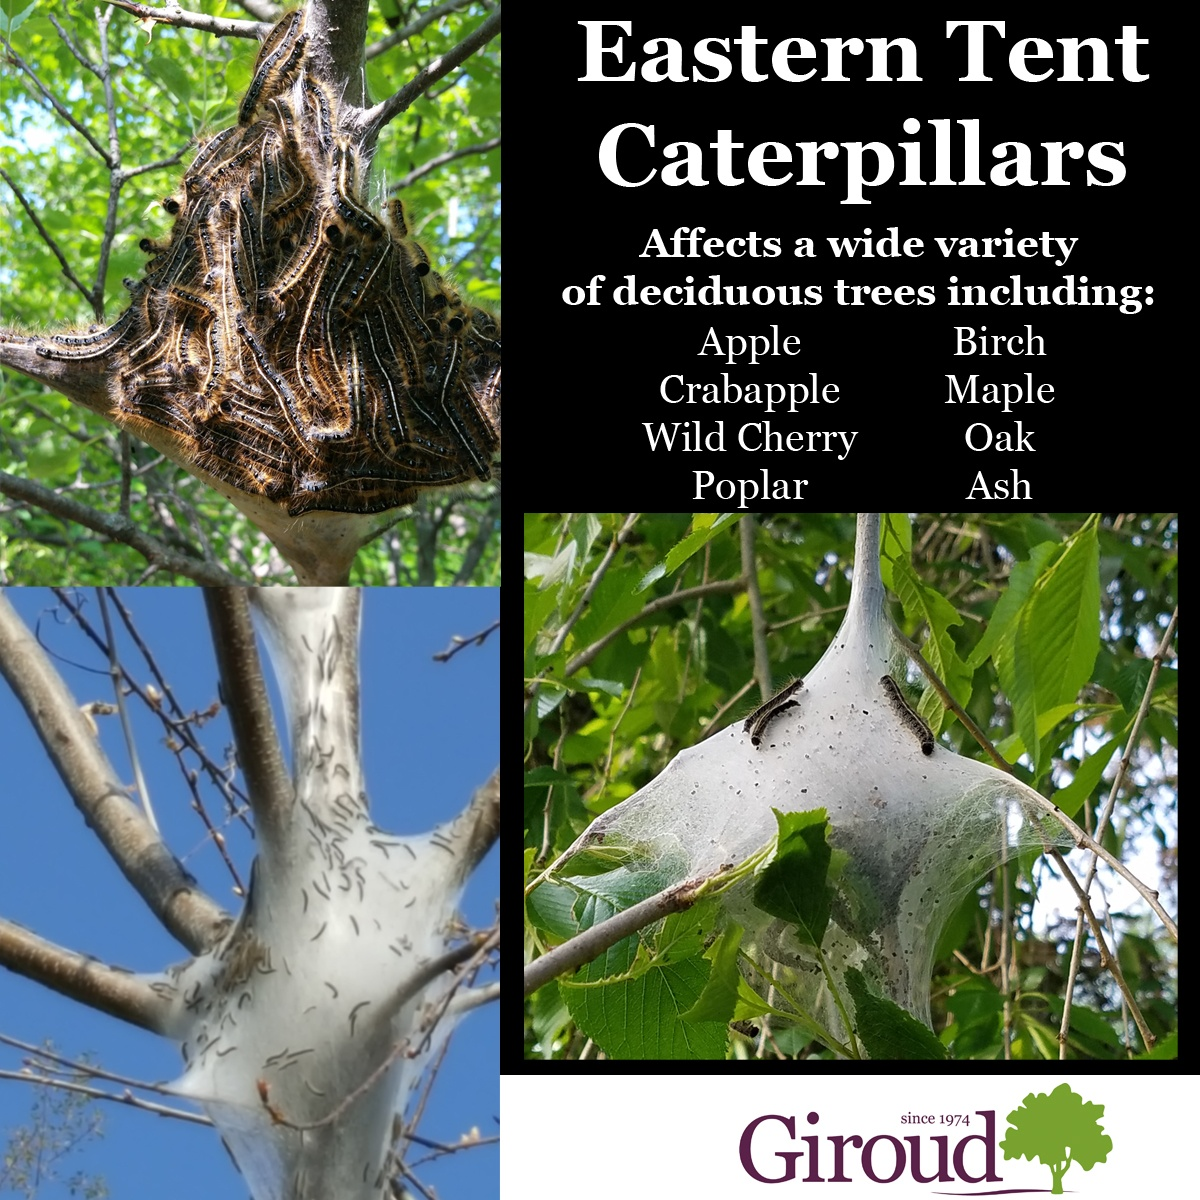 2018-Top-5-Damaging-Insects-You-Need-to-Watch-for-on-trees-and-shrubs-Eastern-Tent-Caterpillar-Facts